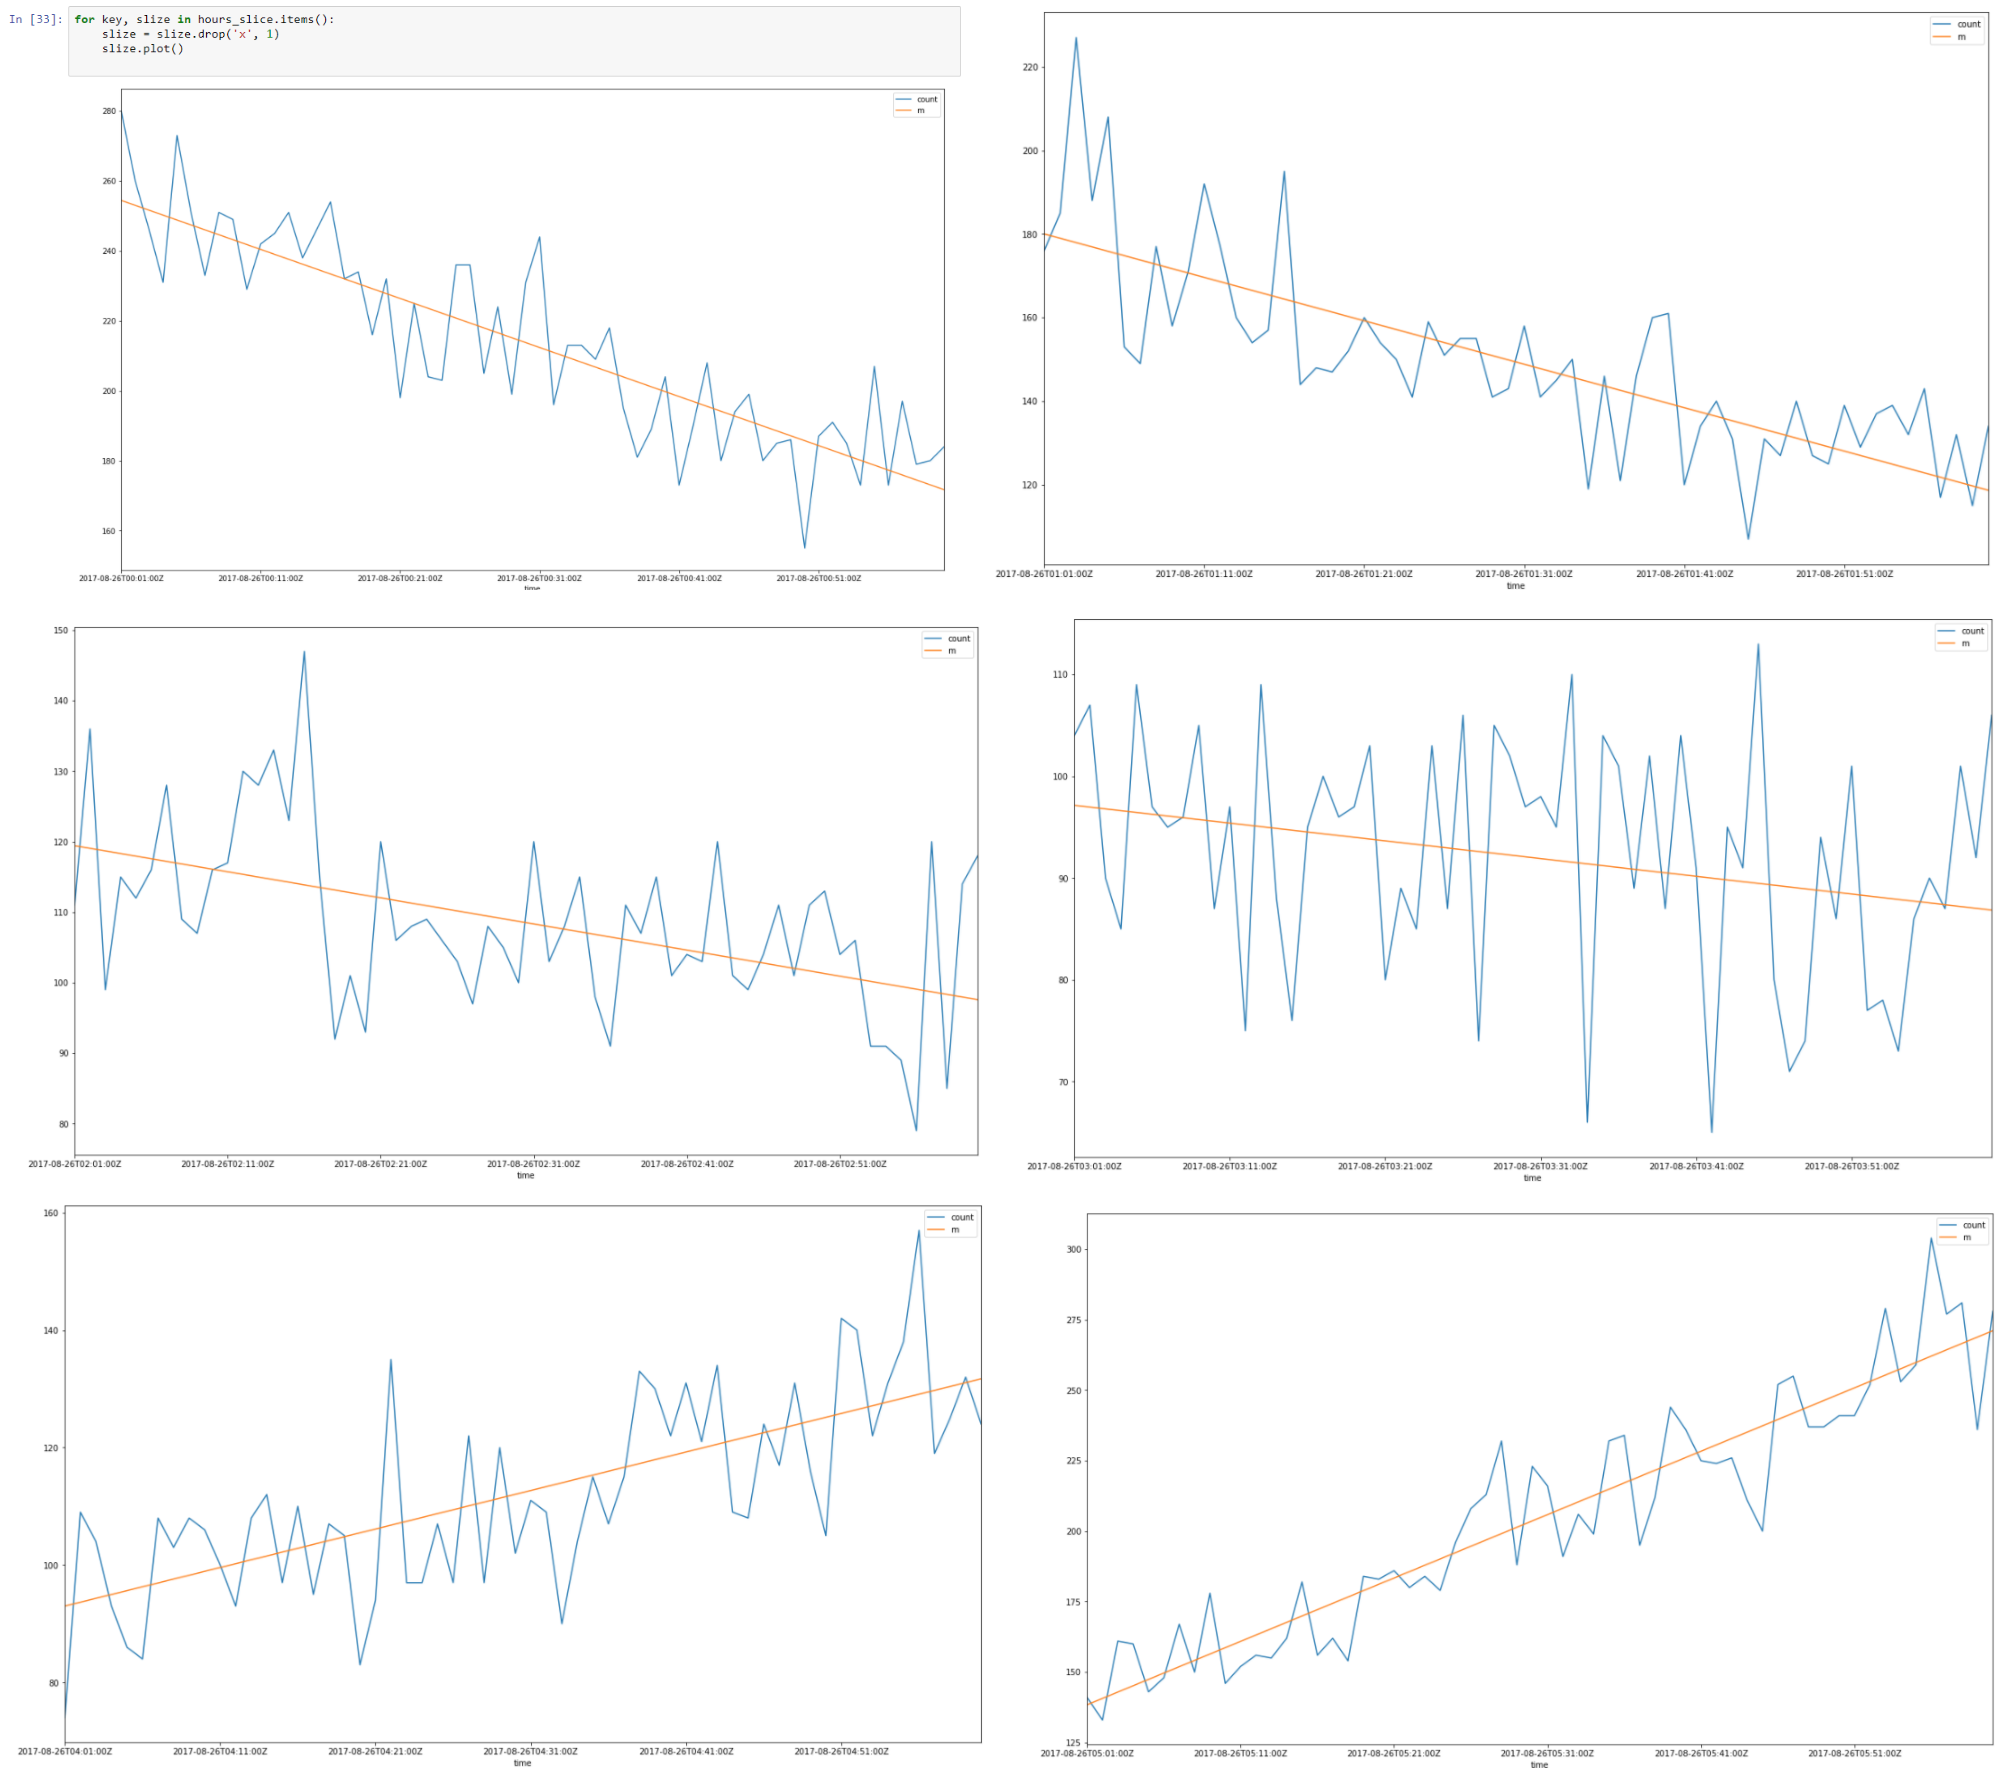 Time Series Modelling - 12